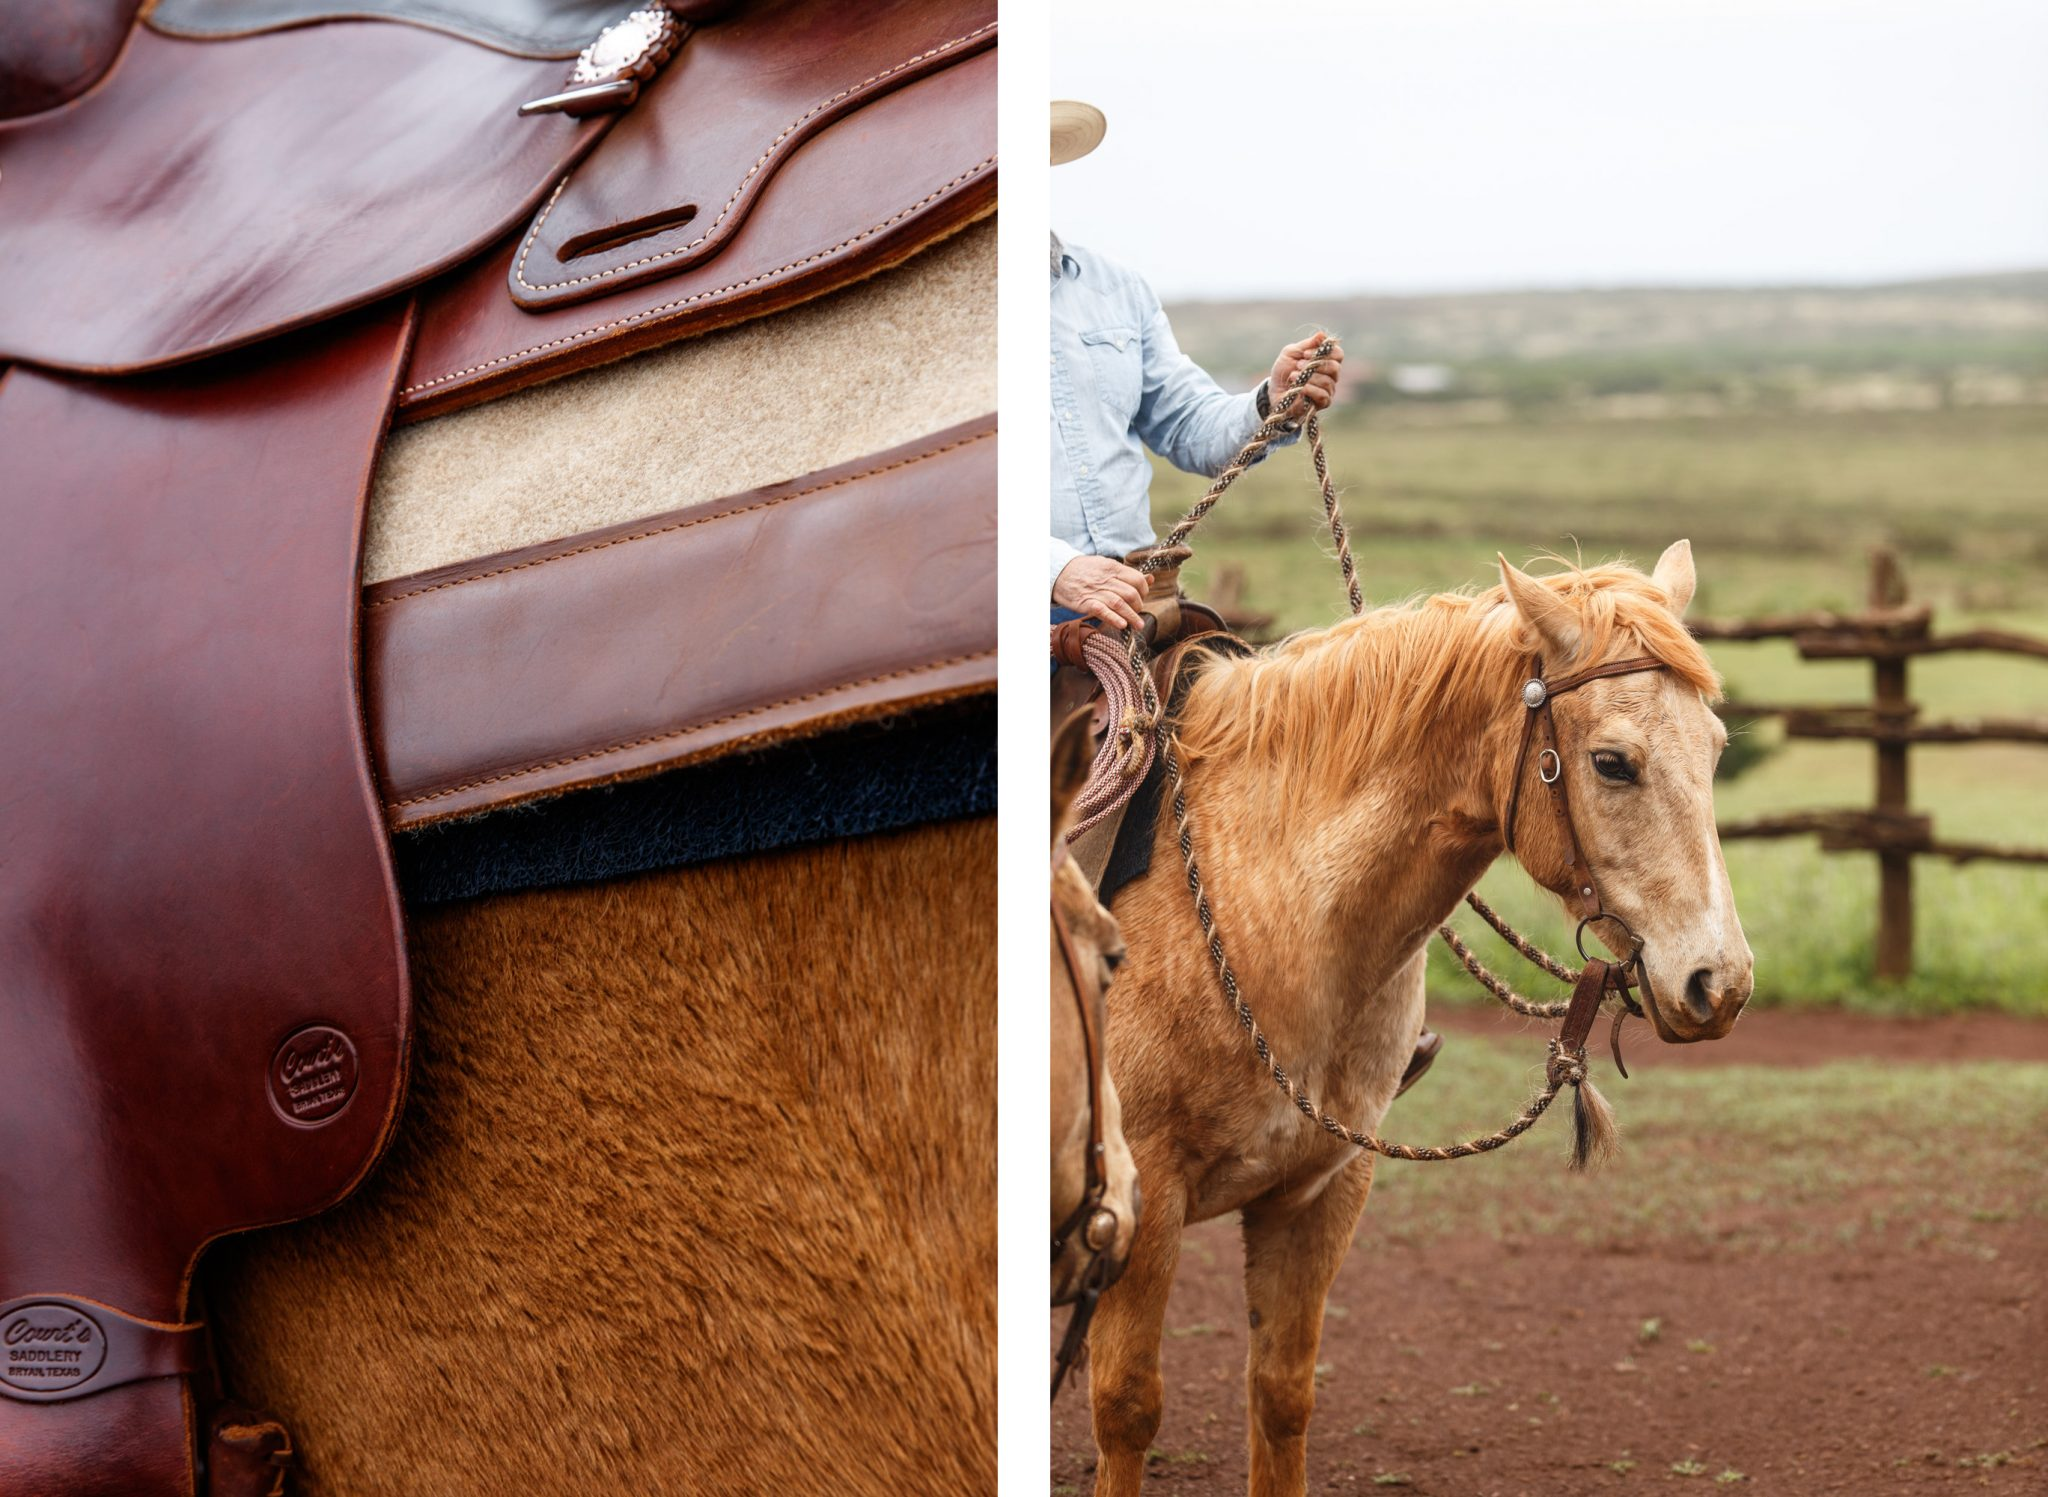 Lanai saddle detail, horse comparison